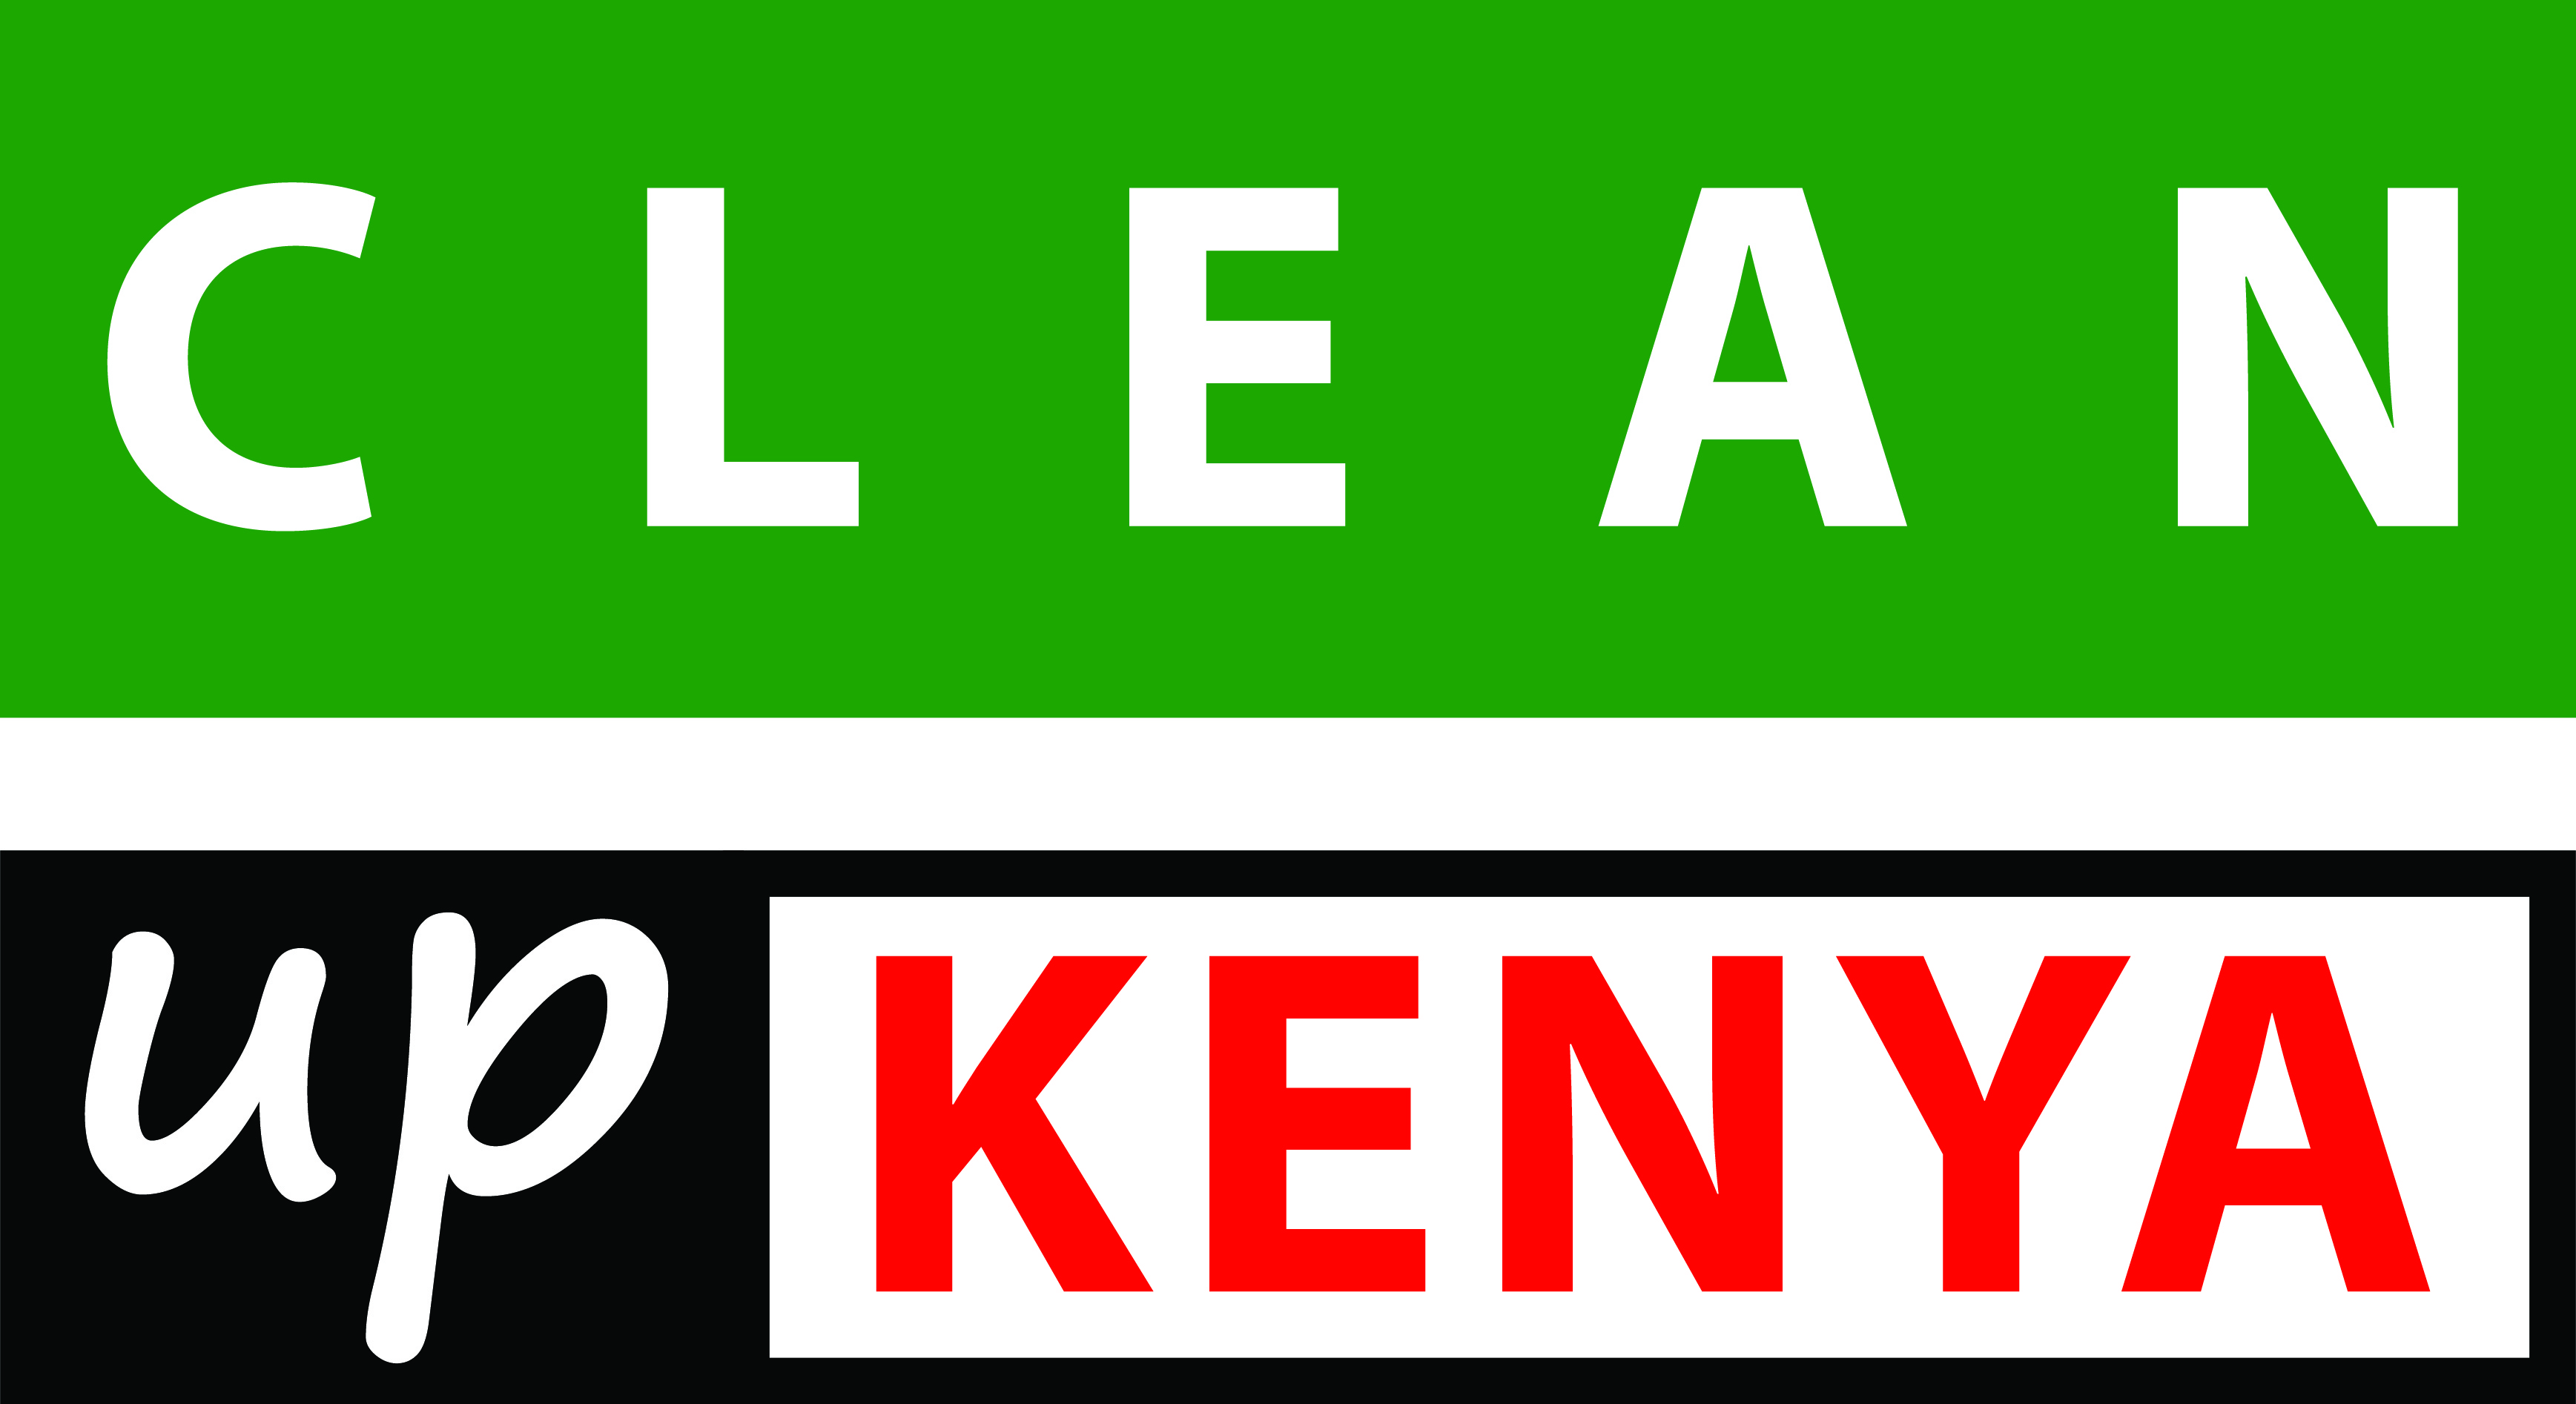 Clean Up Kenya